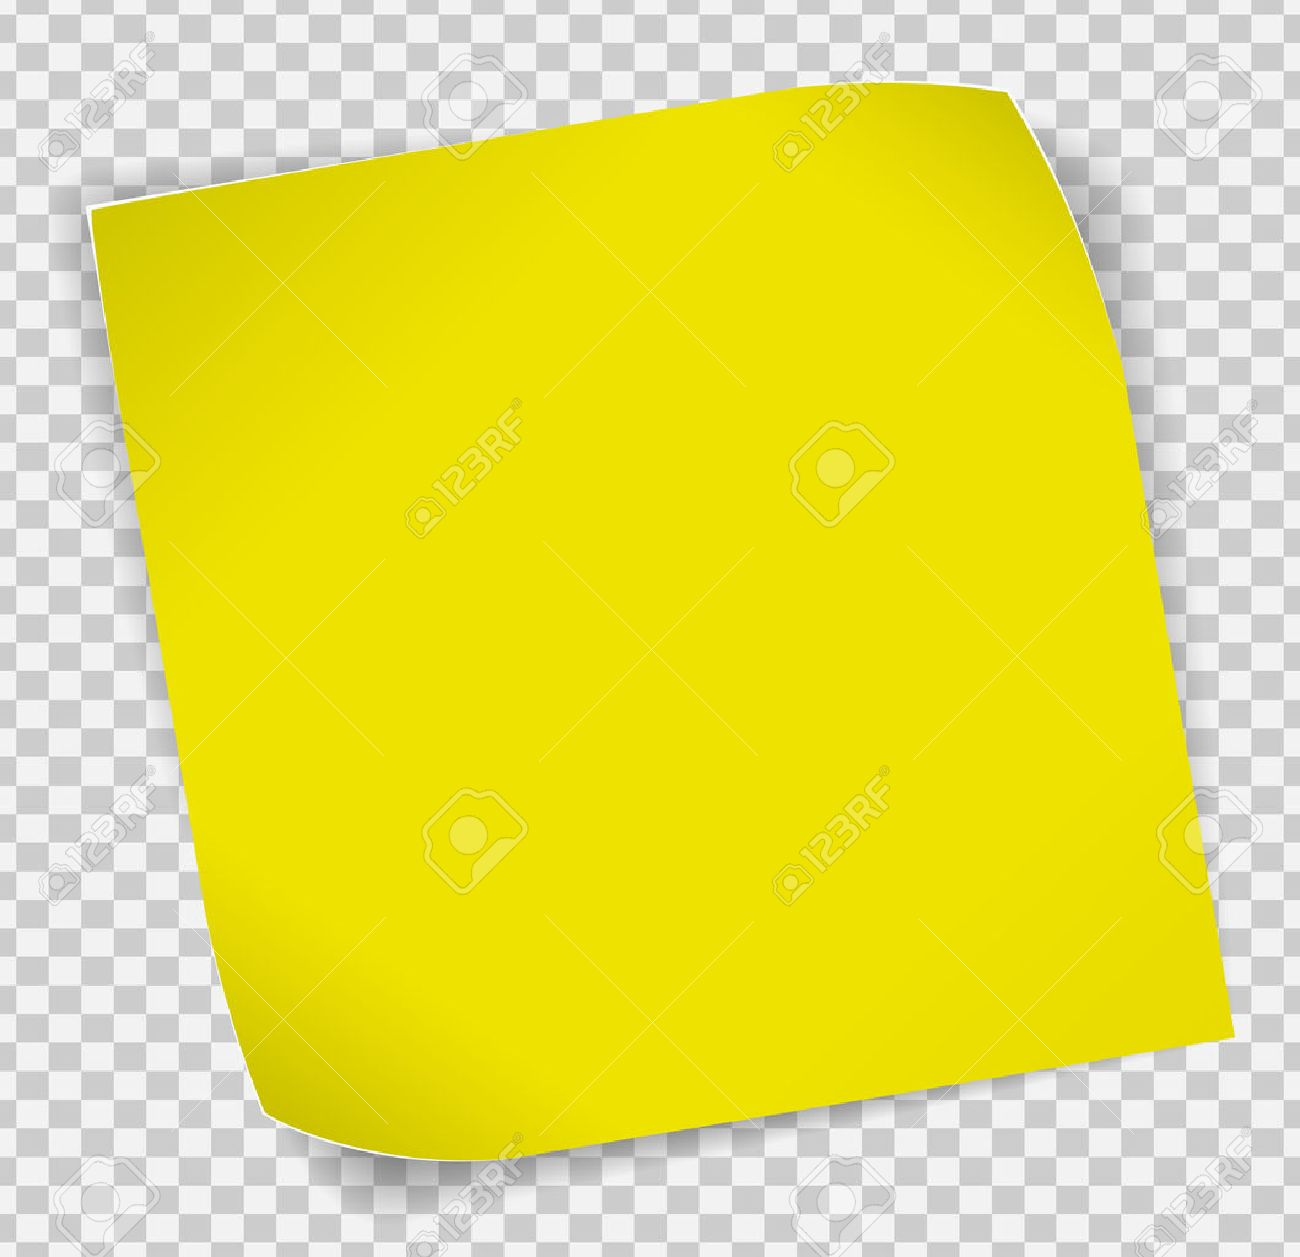 Yellow paper curled sticker with shadows over transparent background. - 55958064